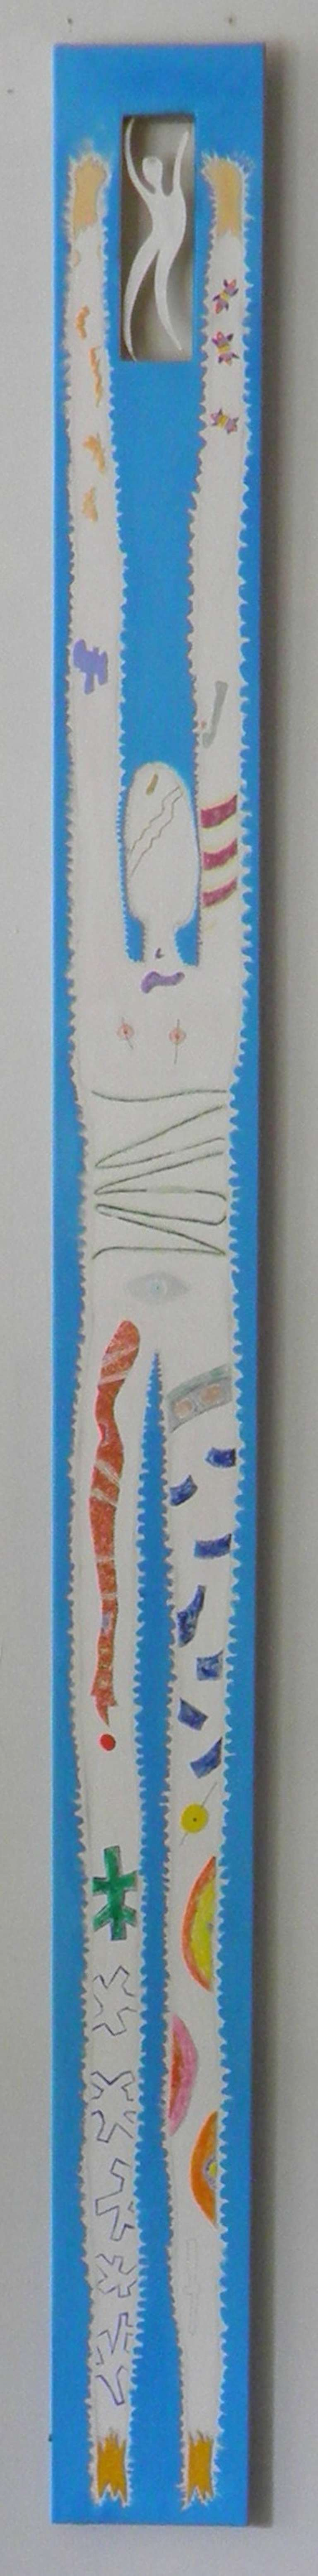 Noted contemporary artist Ronn Jaffe's mixed-media painting 'Cyan Totem'. Measures: 120 in height x 10 in wide--One of his Gatherings of Totems Around his Myth of Holloman & Totem.  This is a major seminal piece from Ronn Jaffe's Myth of